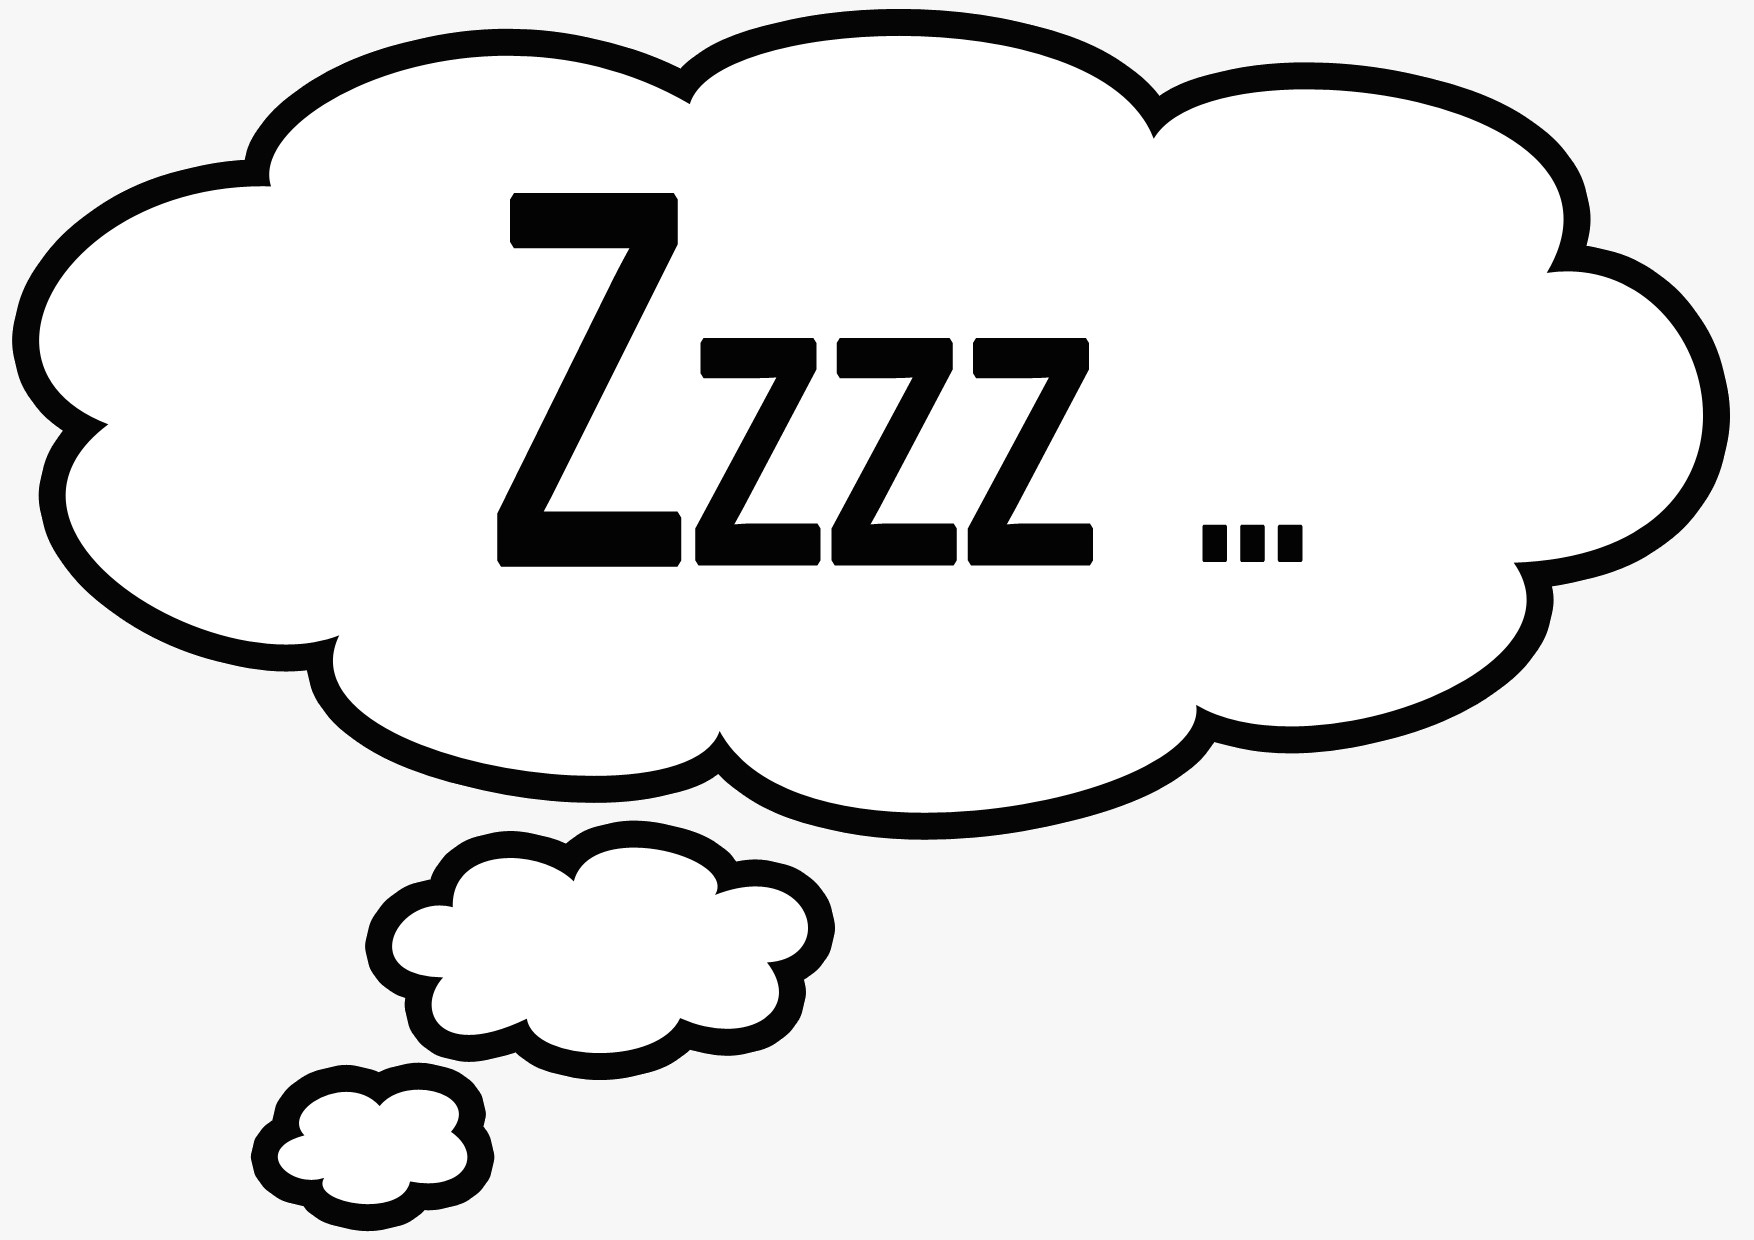 Free Sleepy Head Cliparts, Download Free Clip Art, Free Clip.